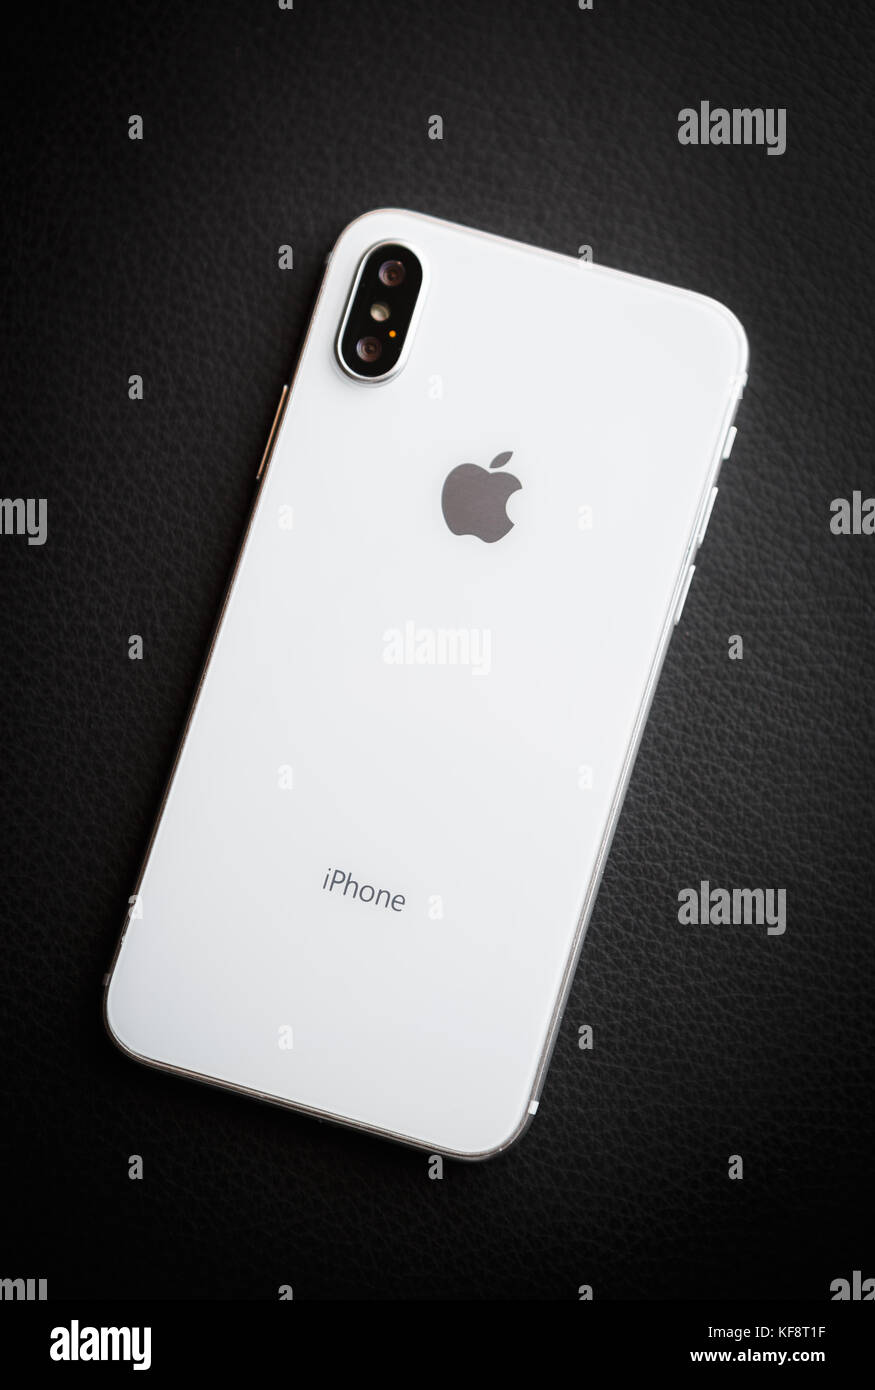 medium resolution of new iphone x model close up modern iphone 10 smart phone model trendy mobile device white apple iphone mobile phone with big screen and dual camera